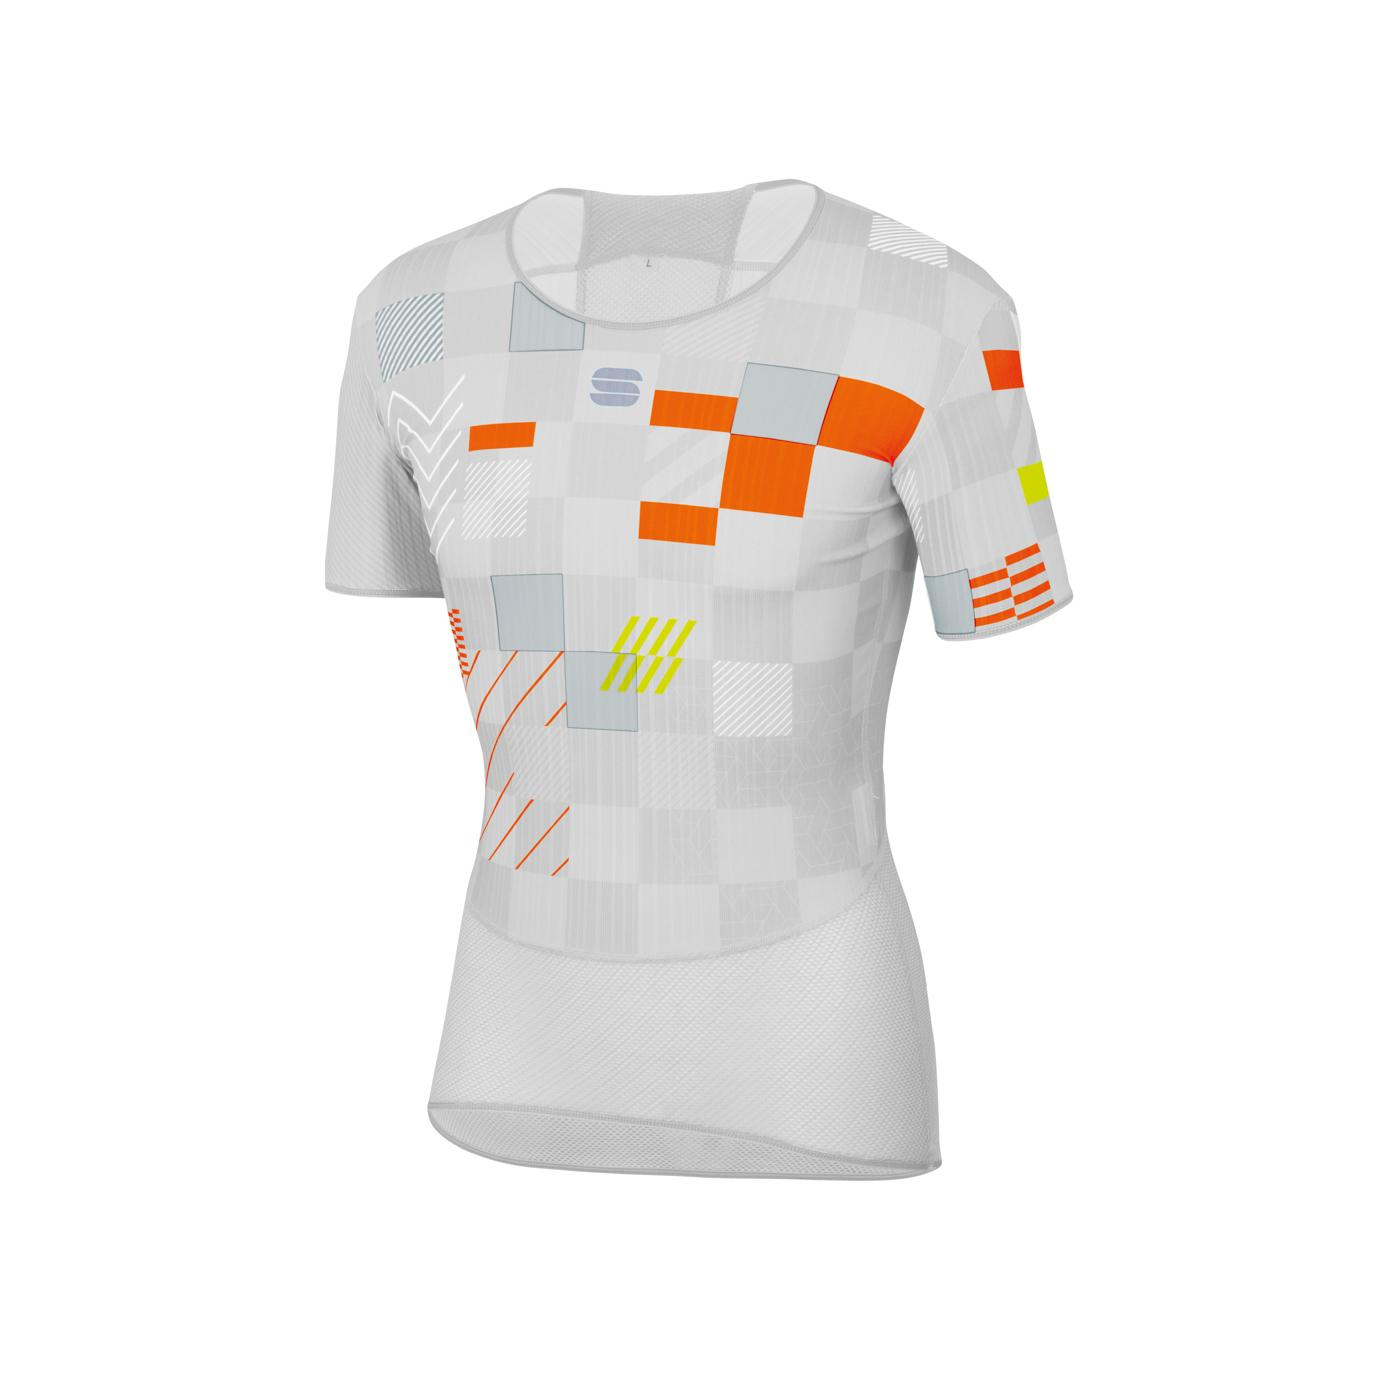 Sportful Ondershirt Korte mouwen voor Heren Wit Zilver - SF Pro Baselayer Tee-White Silver Orange